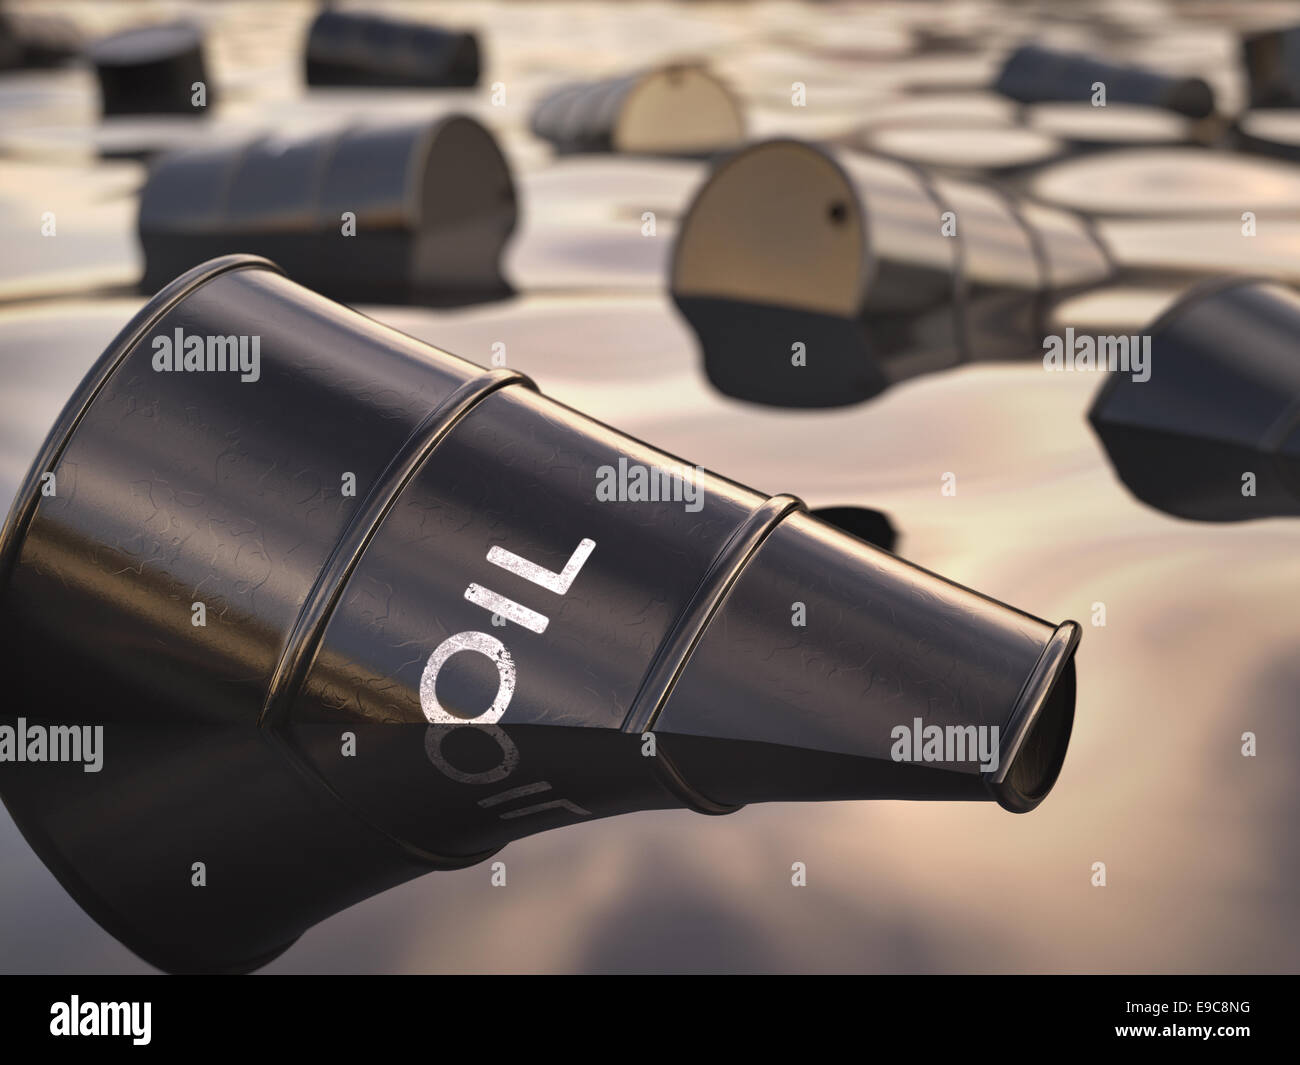 Barrels floating on a sea of oil. Concept of environmental disrepair. - Stock Image